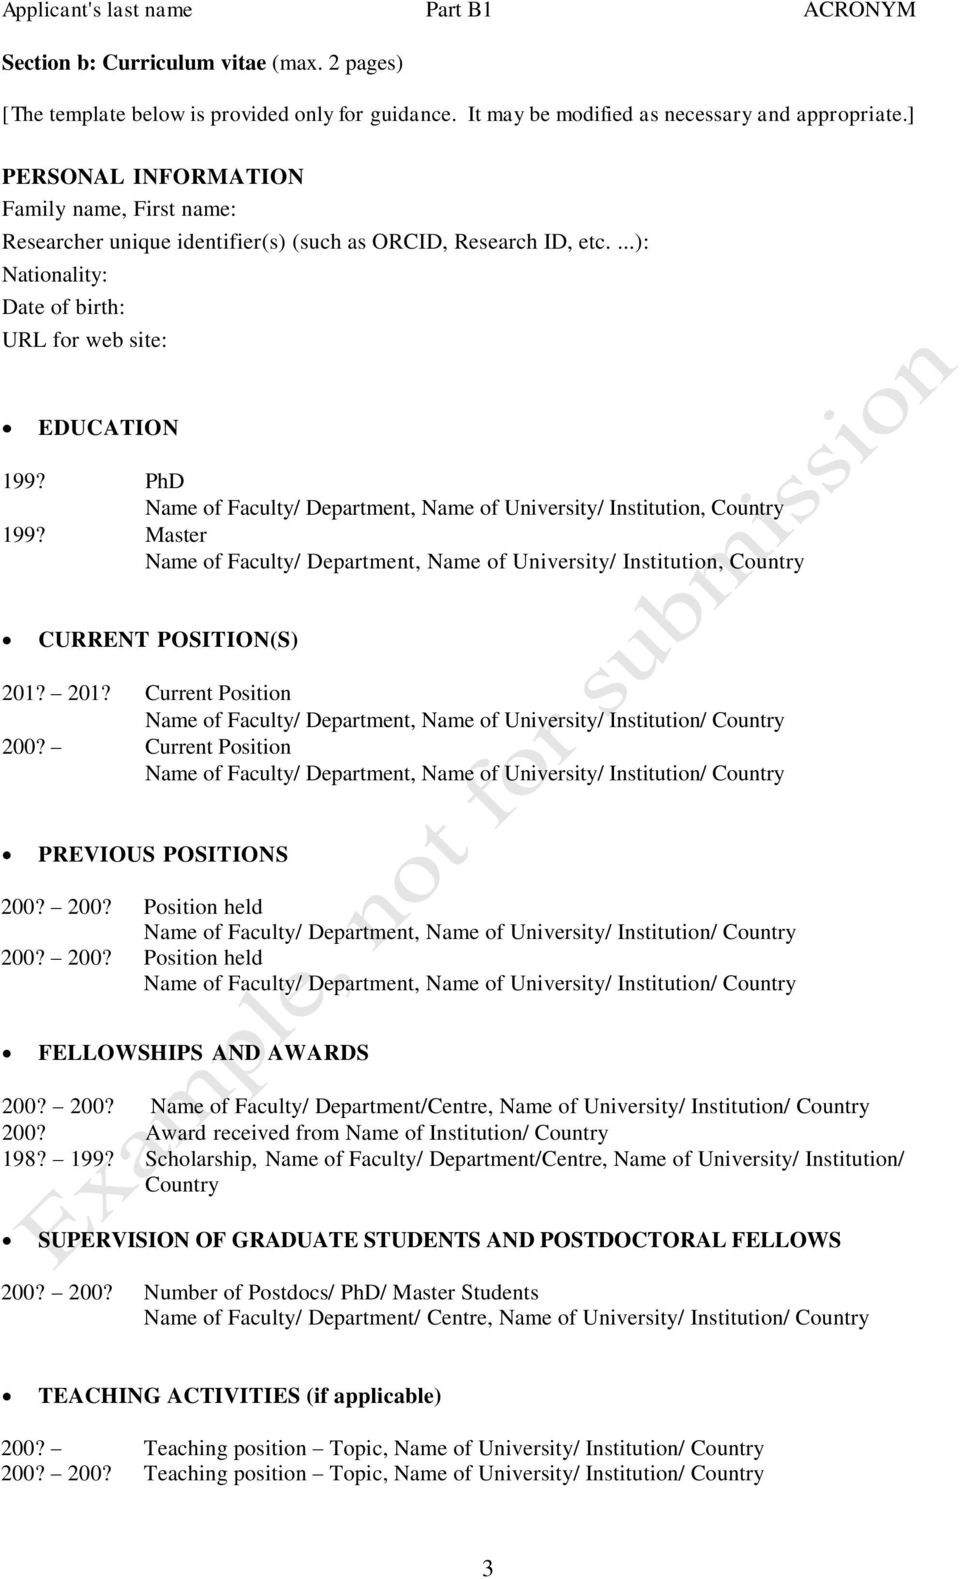 PhD Name of Faculty/ Department, Name of University/ Institution, Country 199? Master Name of Faculty/ Department, Name of University/ Institution, Country CURRENT POSITION(S) 201?